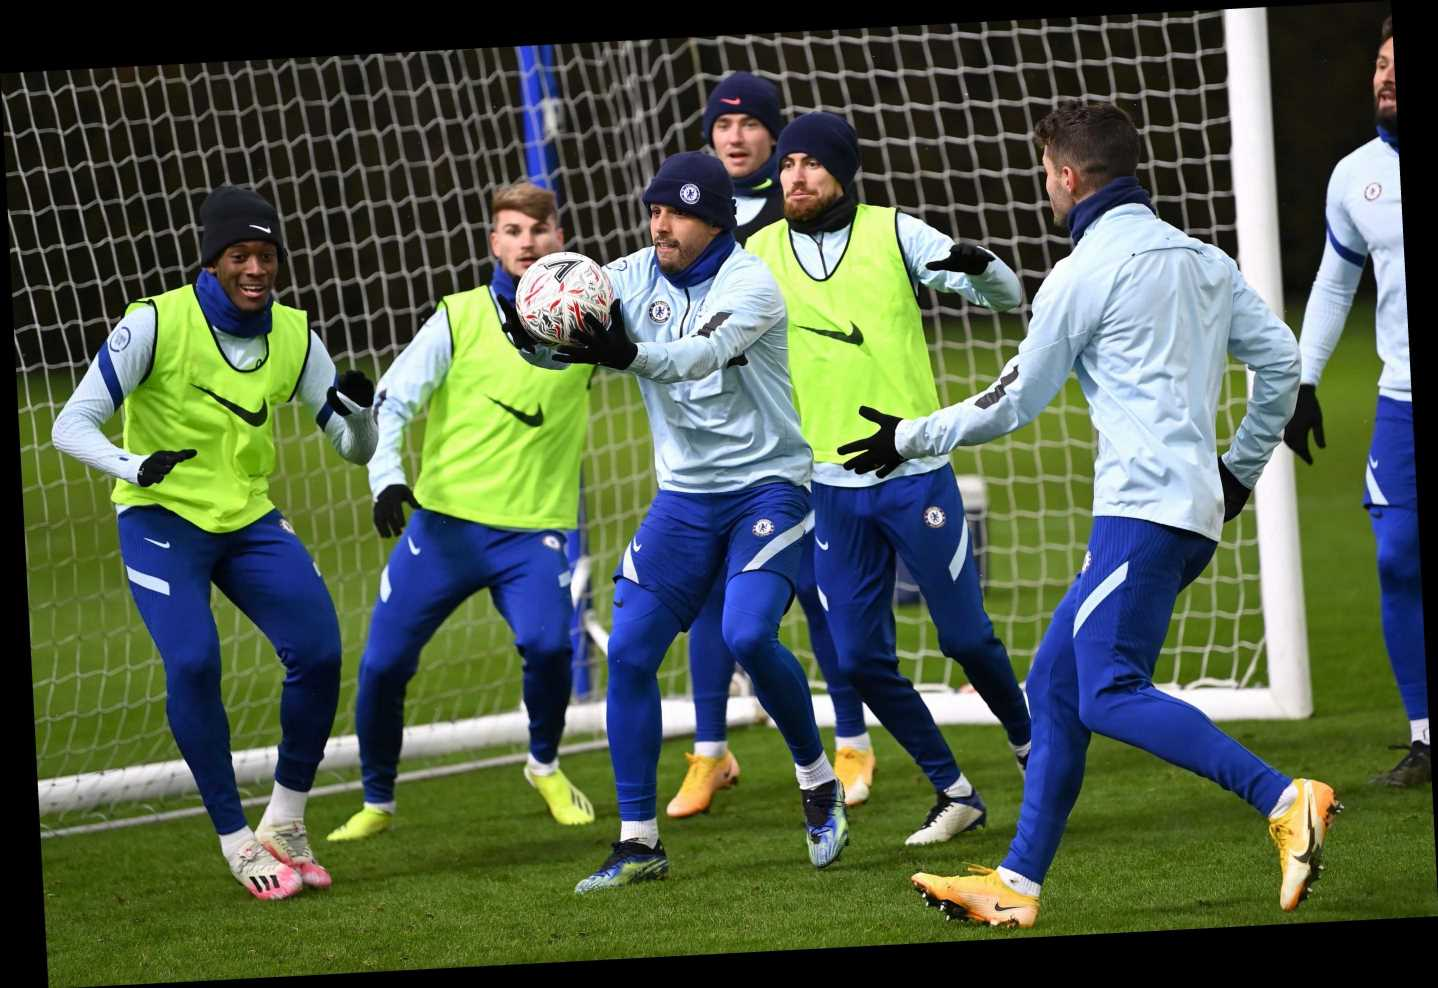 Chelsea confirm Champions League clash vs Atletico Madrid will take place in Bucharest due to Spain's Covid travel ban